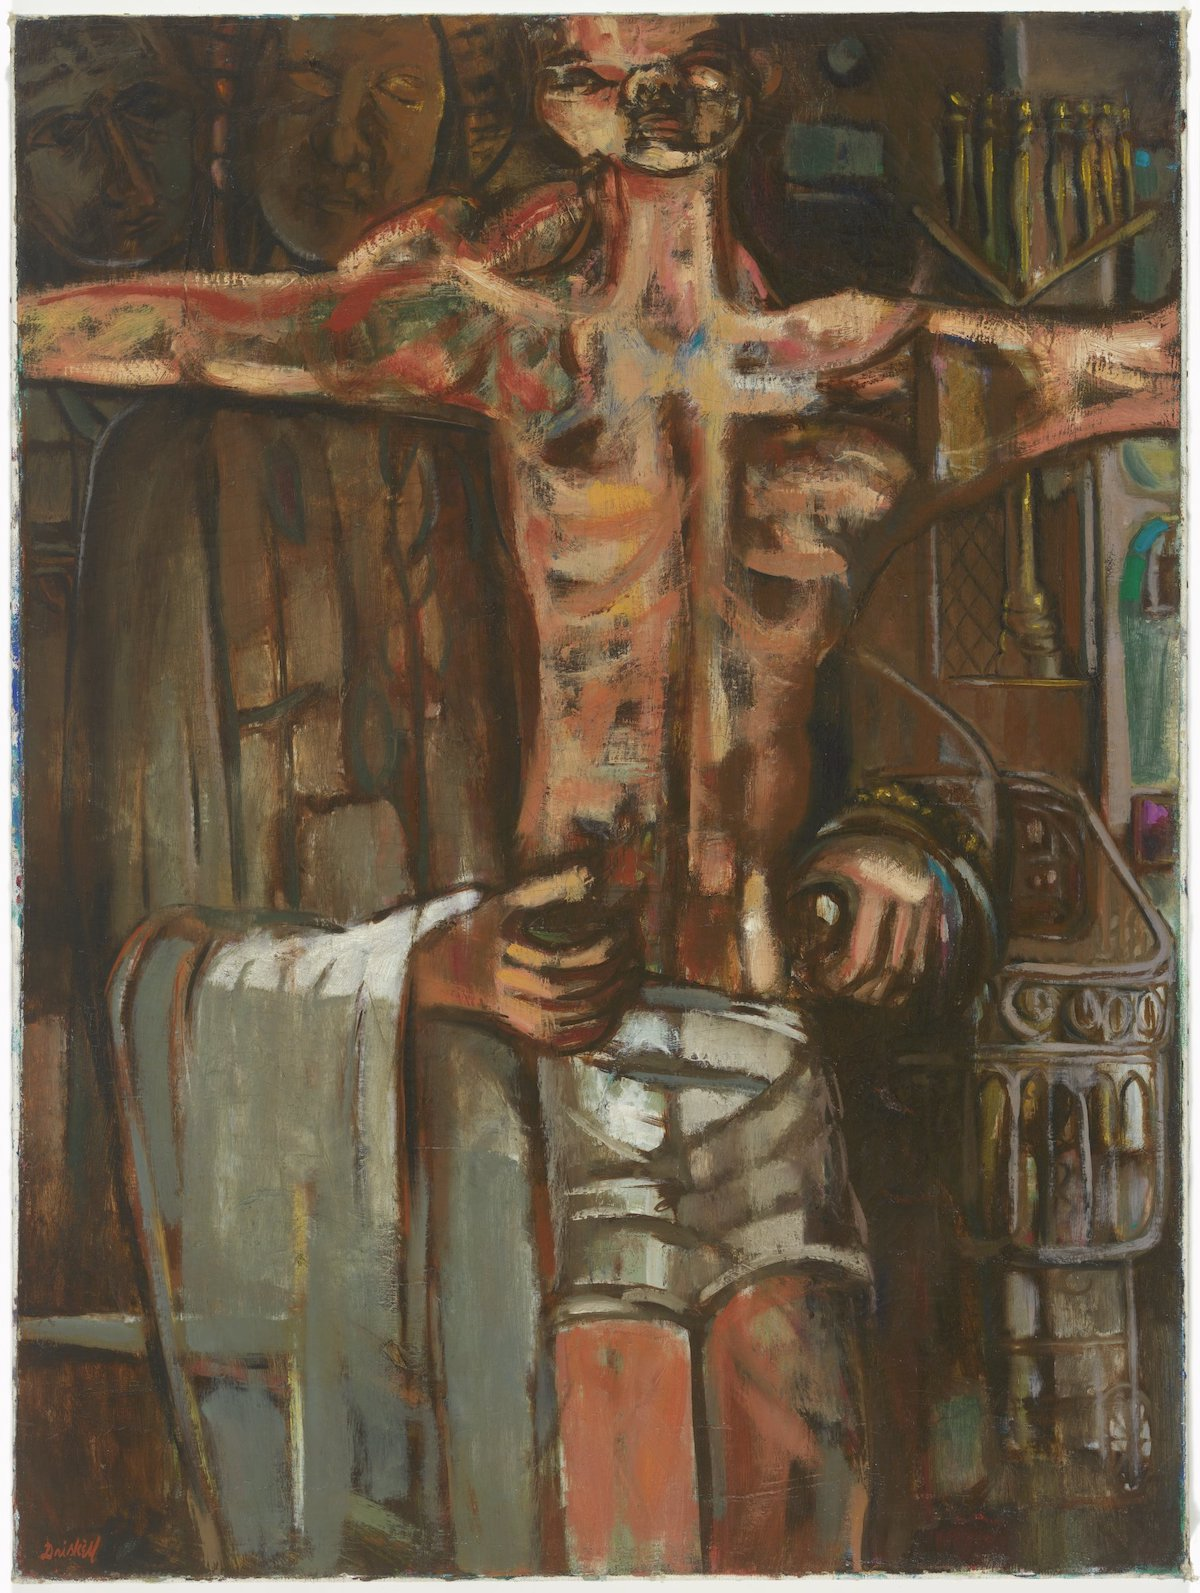 David C. Driskell, 'Behold Thy Son', 1956. A Black figure is shown on a crucifix while a priest-like figure attends to it.